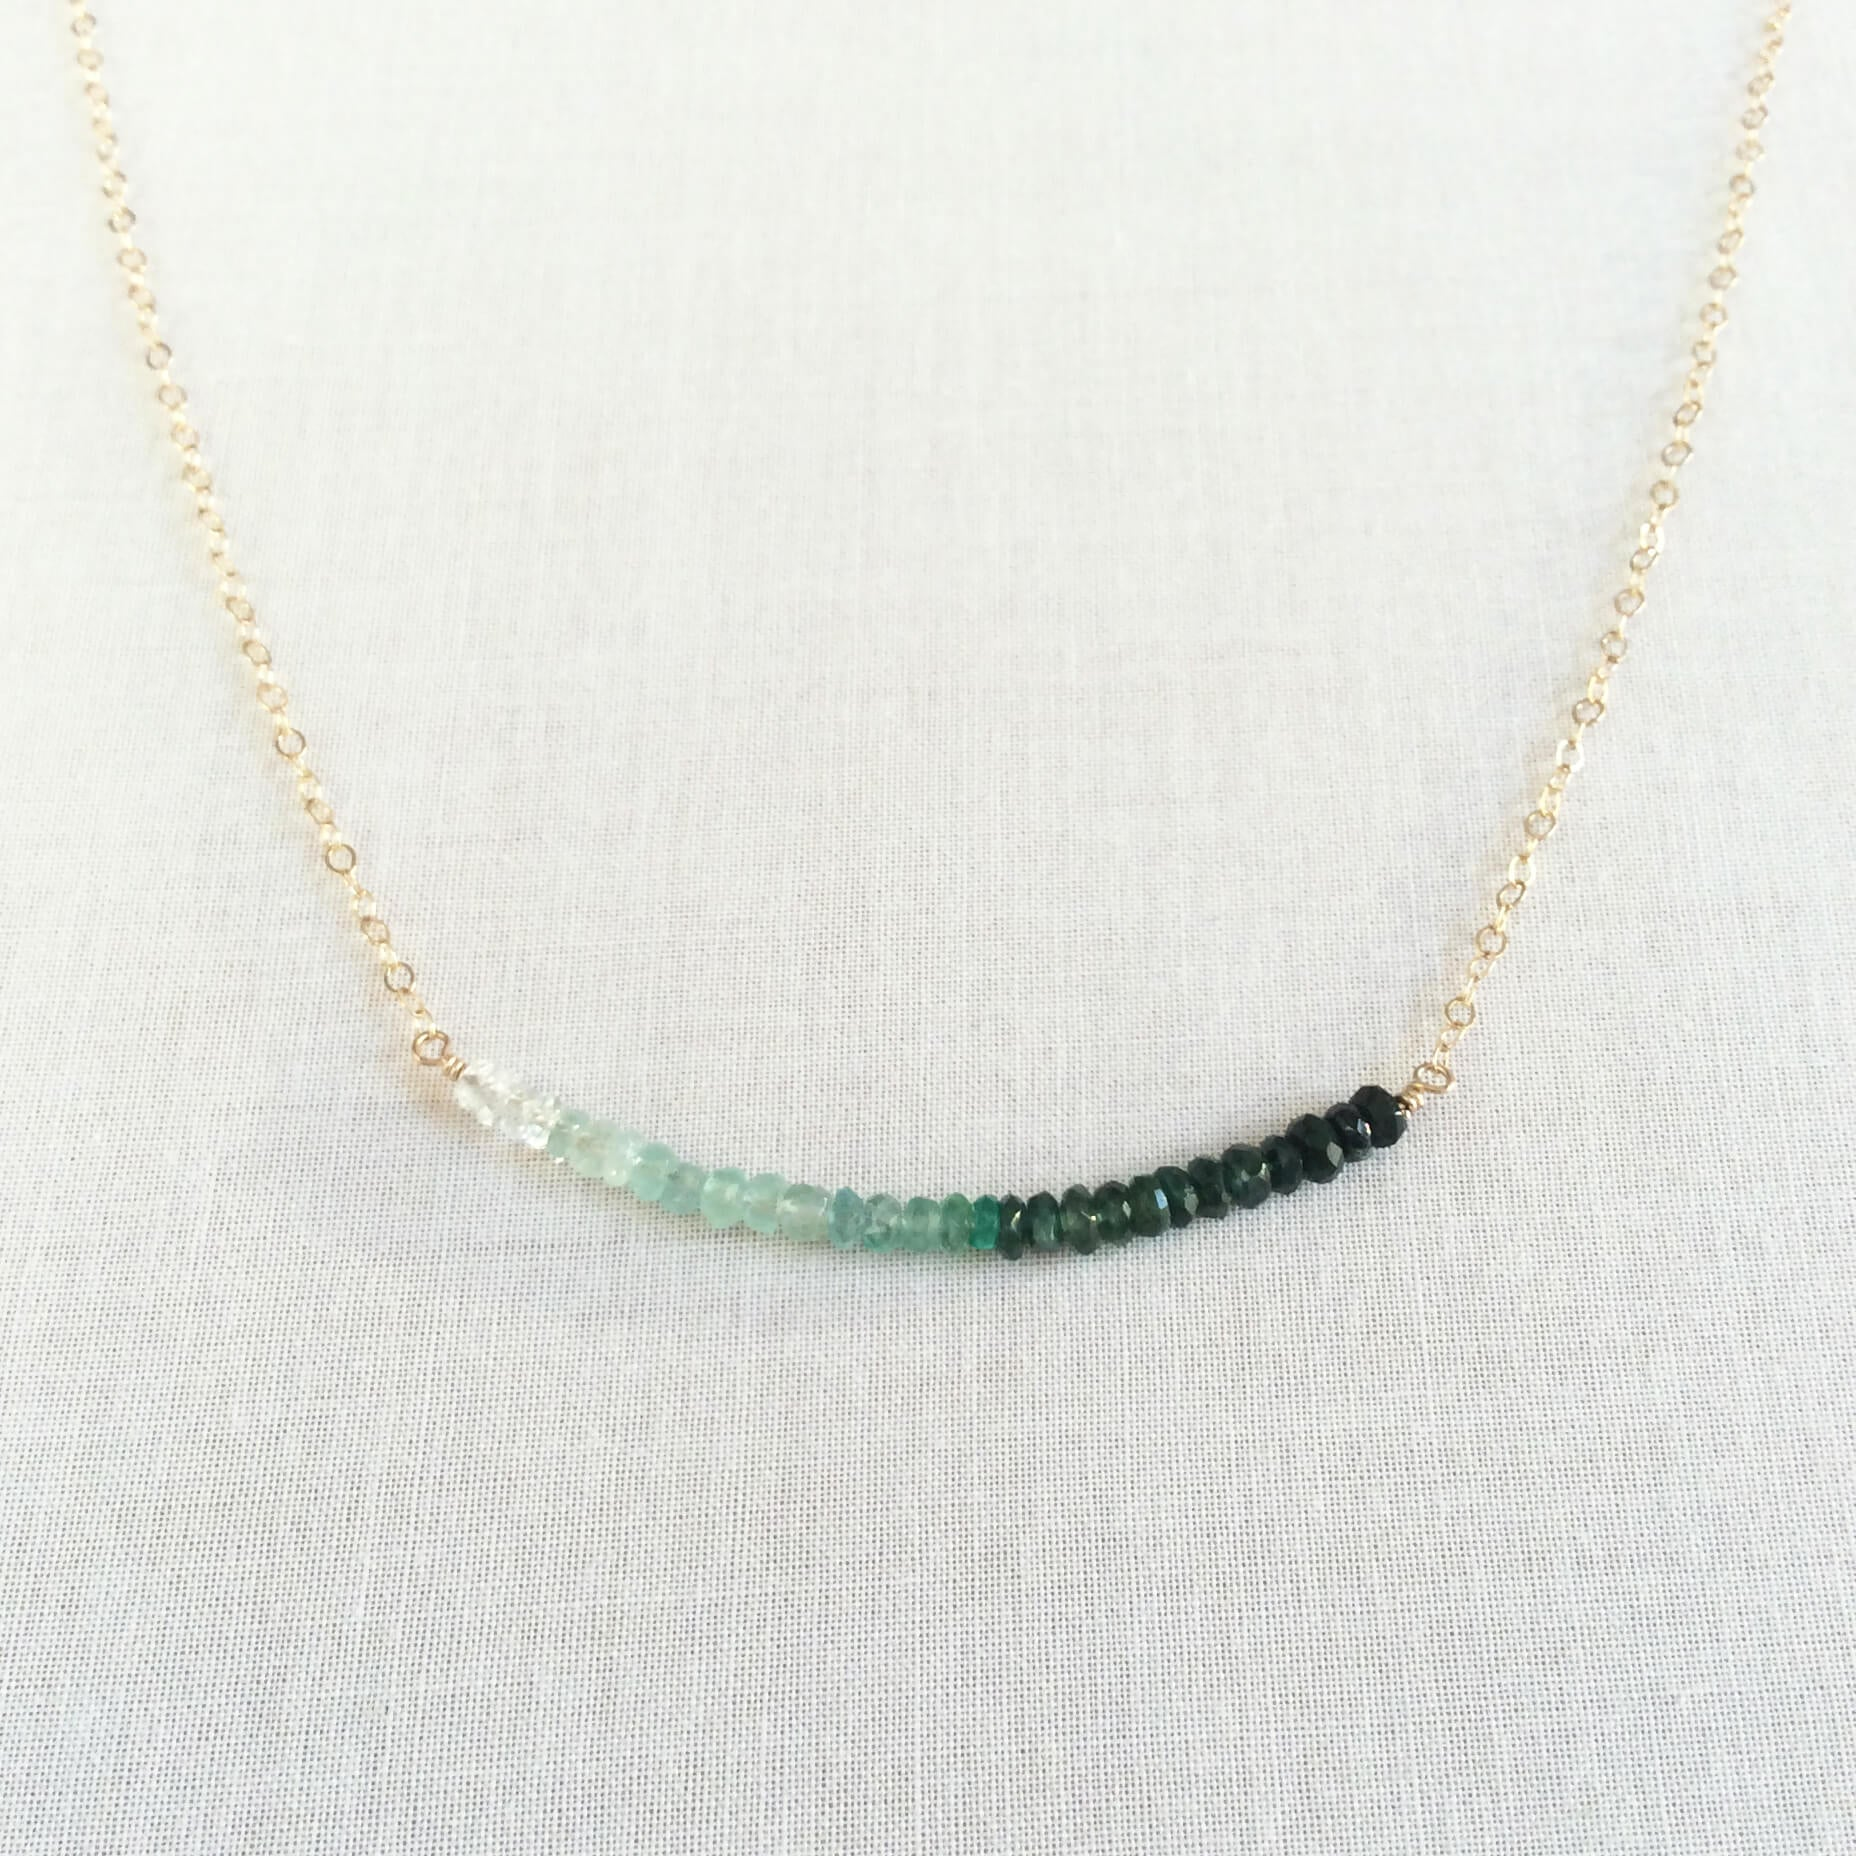 This ombre emerald necklace is made of real emerald beads and 14k gold chain. We can also make it in sterling silver or 14k gold filled chain.  The emerald beads are natural and real.